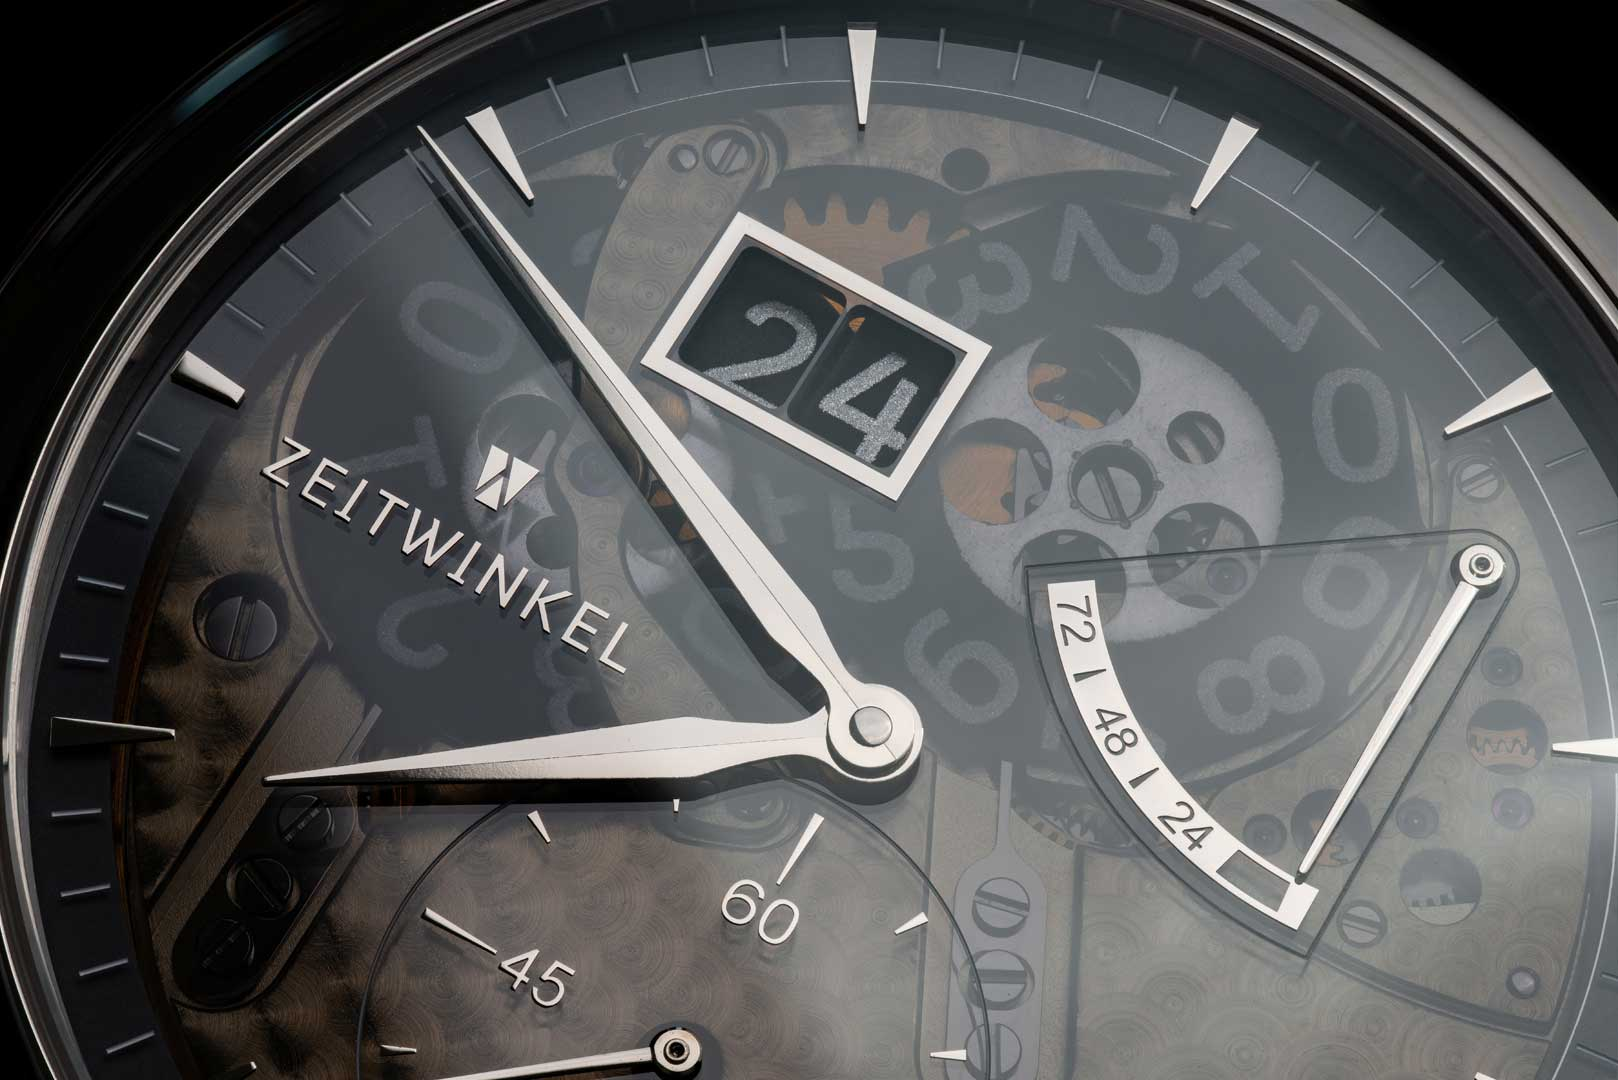 A closer look at the dial of the Zeitwinkel's 273° Saphir Fumé (Photo by @schwarz_makromedia)